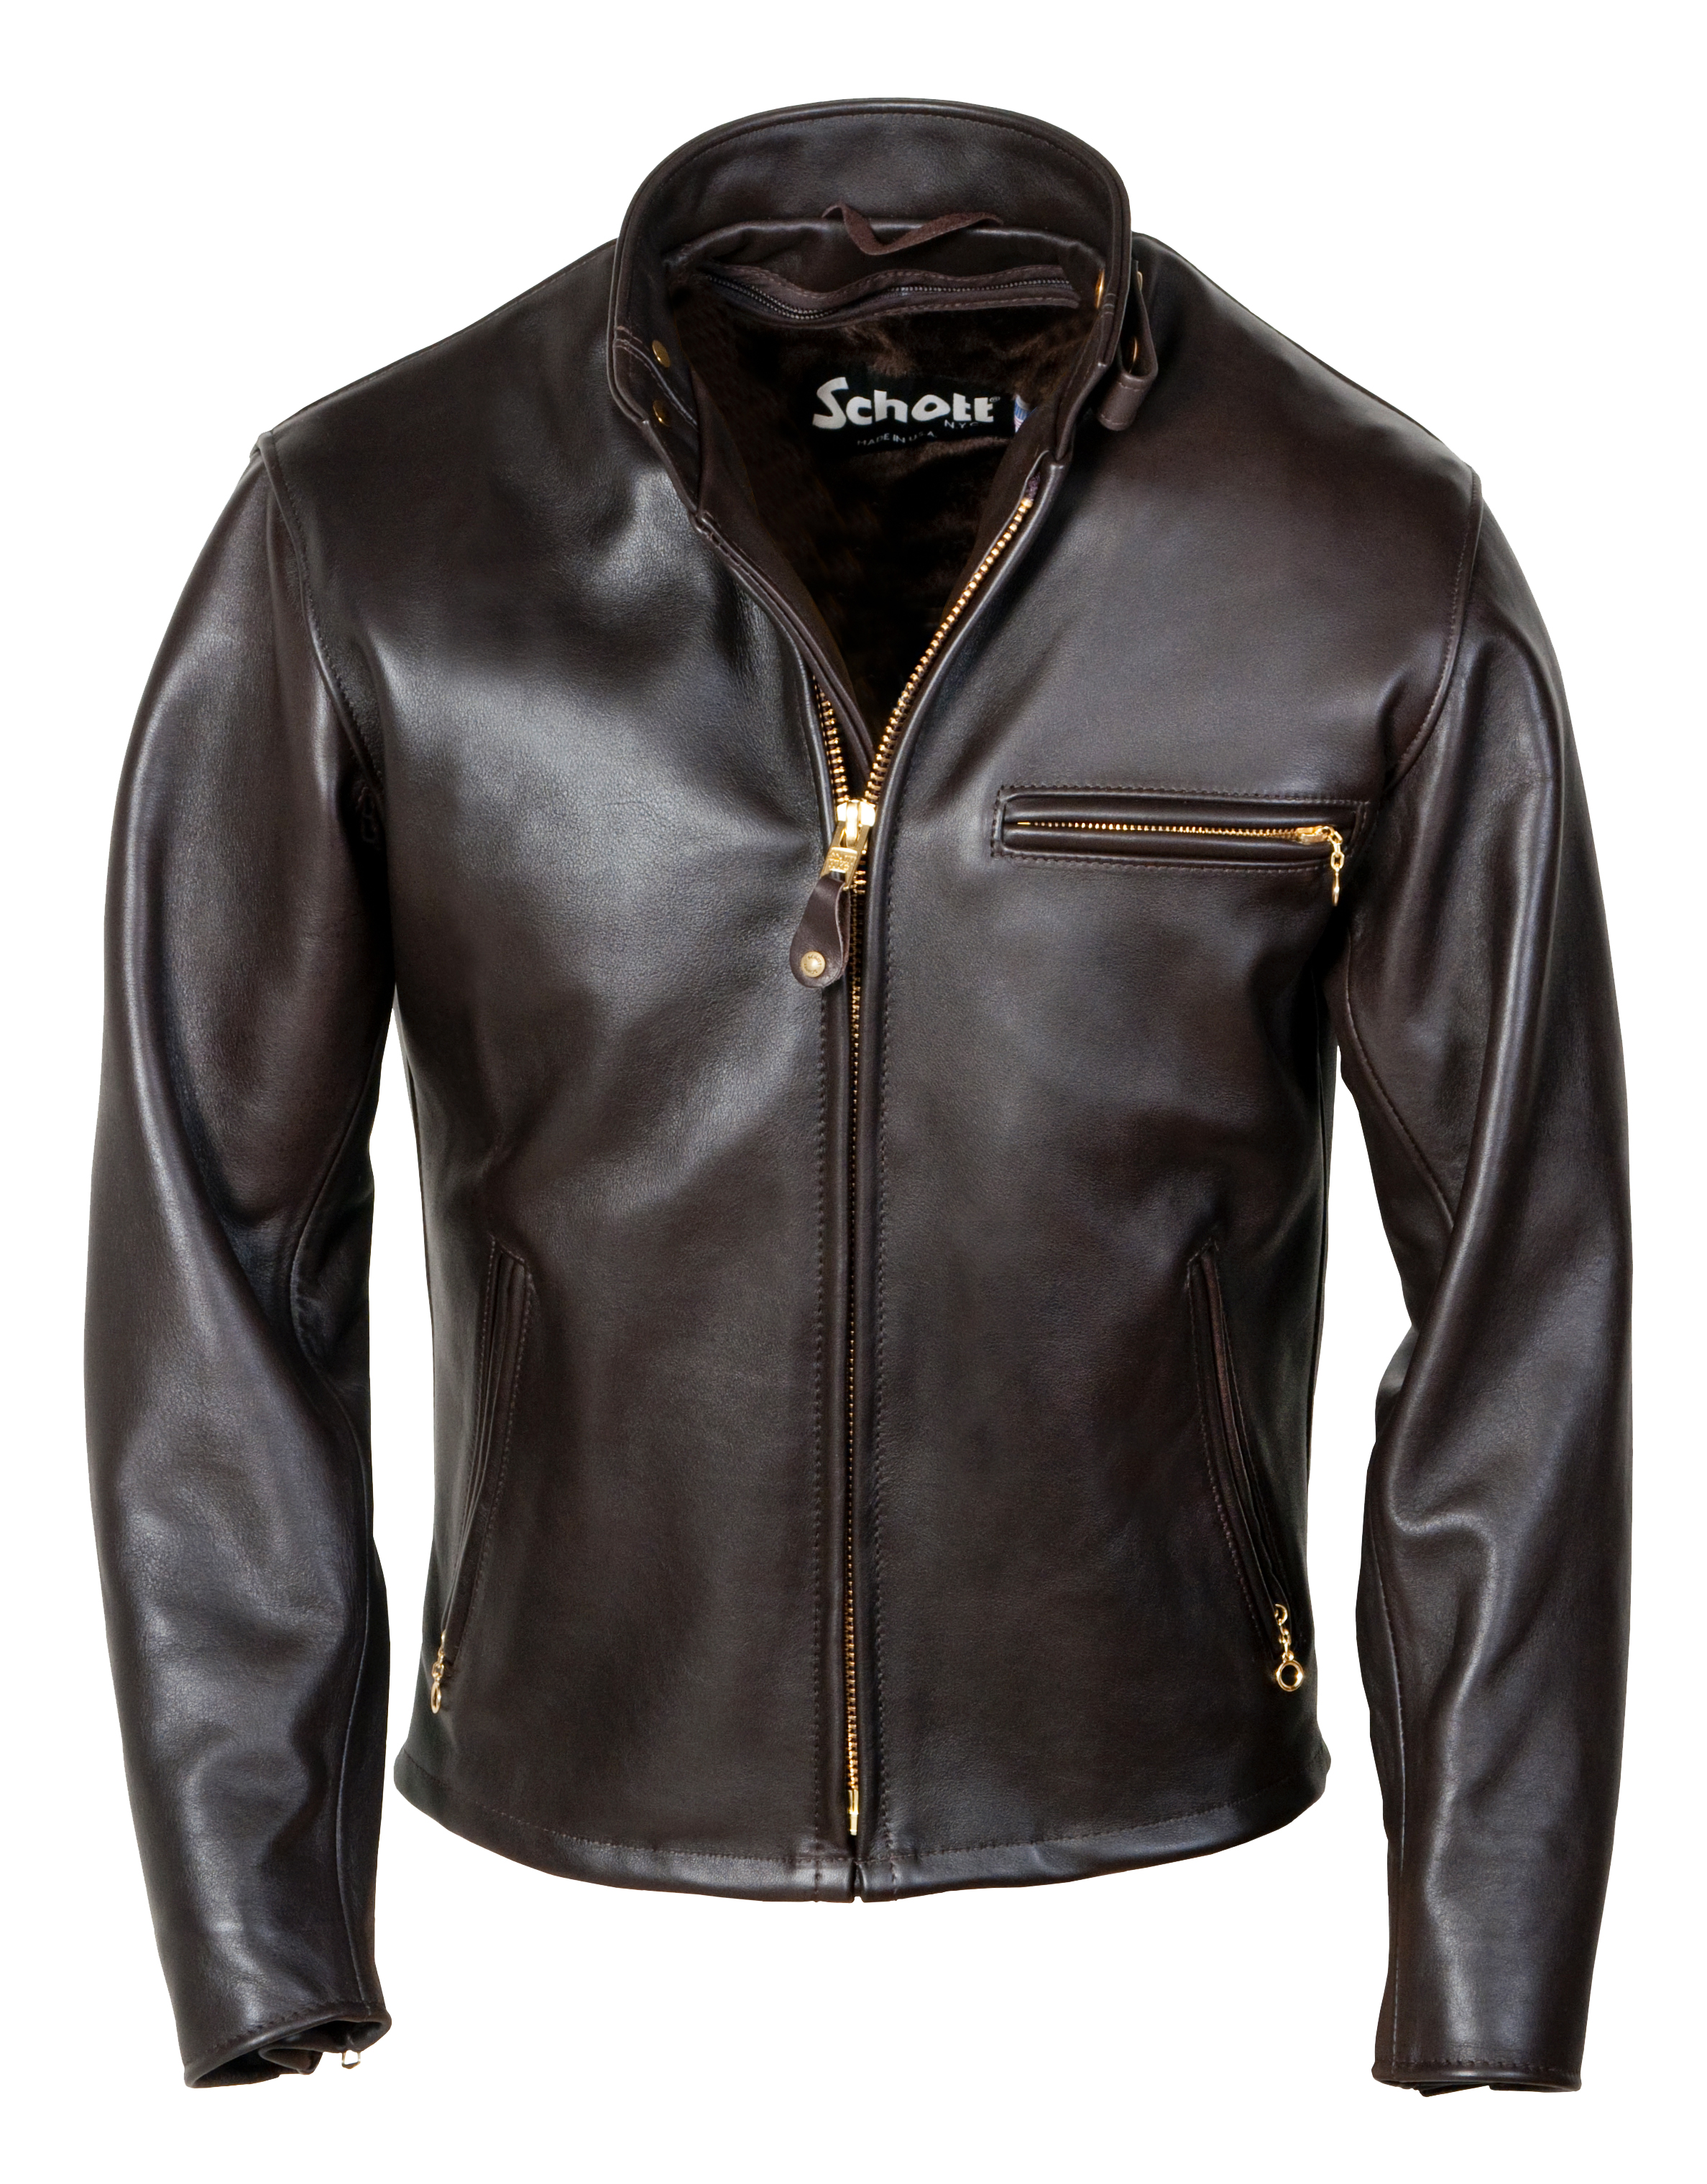 6f54259741a Schott N.Y.C. 141 Classic Racer Leather Motorcycle Jacket - Brown Size 32